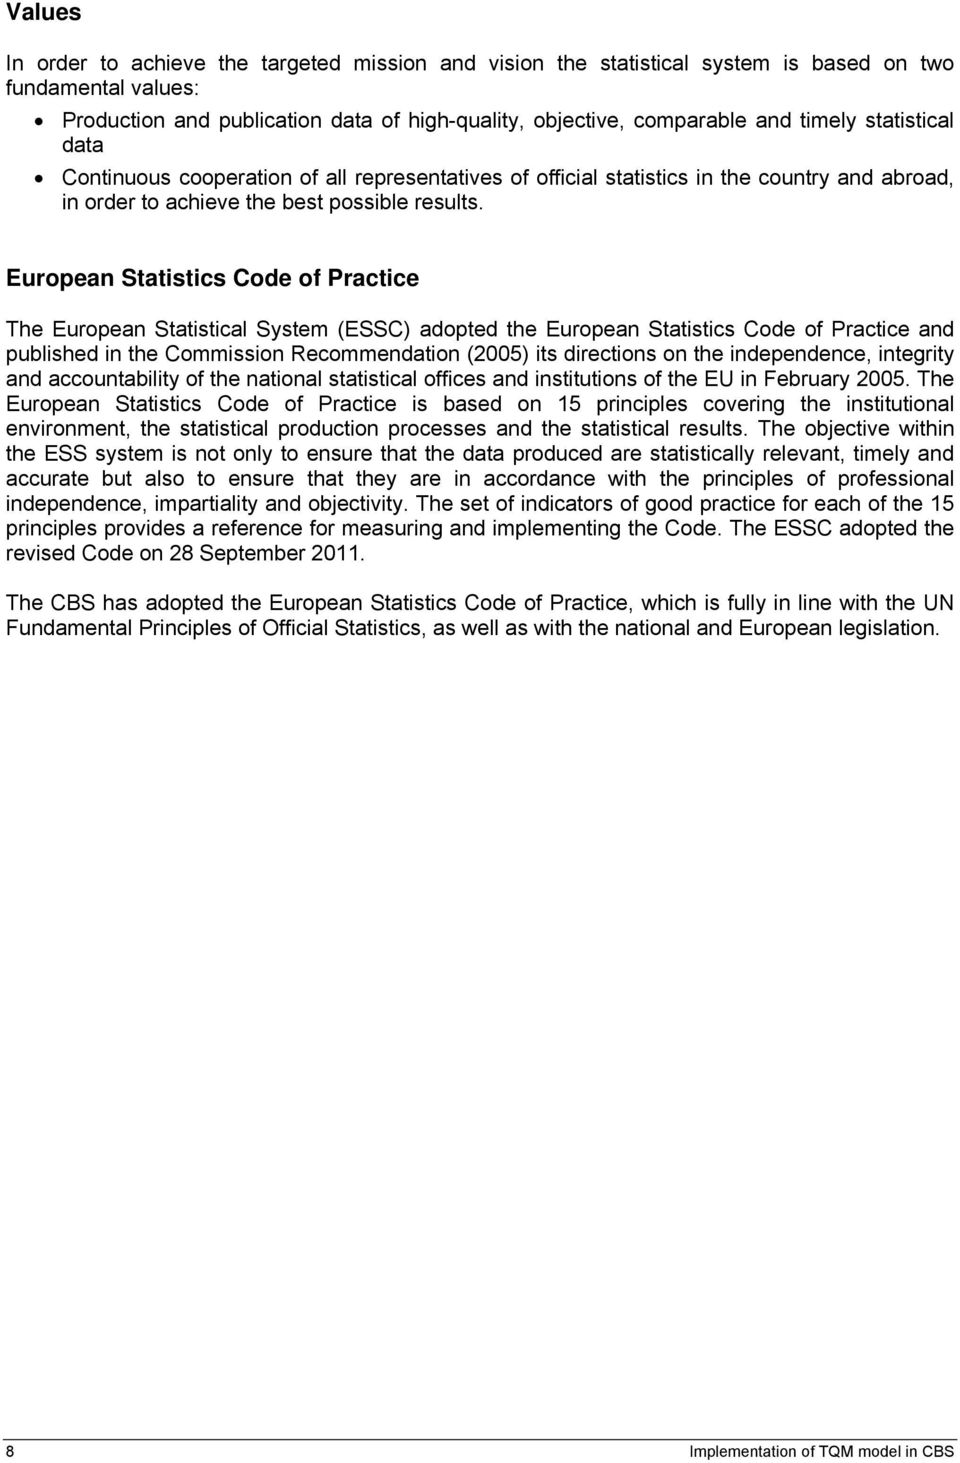 European Statistics Code of Practice The European Statistical System (ESSC) adopted the European Statistics Code of Practice and published in the Commission Recommendation (2005) its directions on